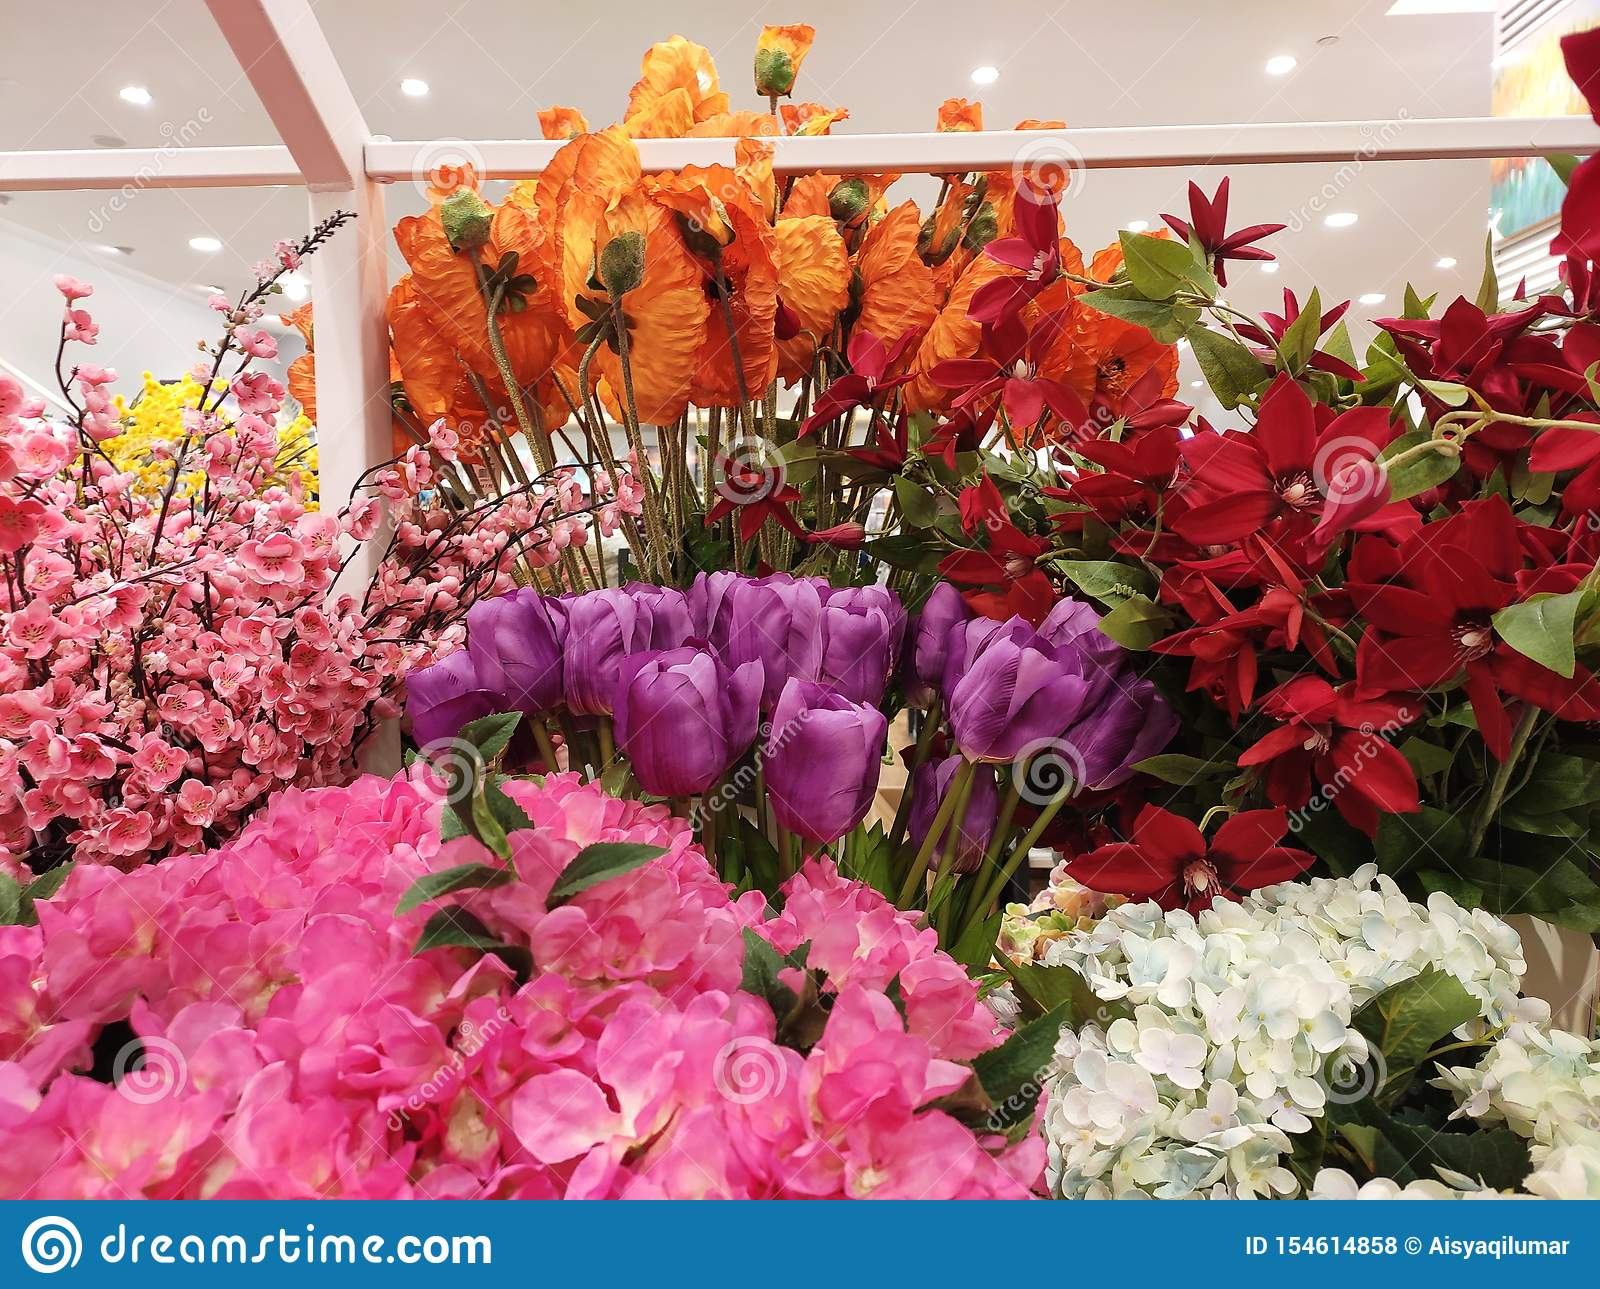 Colorful Artificial Flowers Made Of Plastic Display In Shops For Sale Editorial Stock Photo Image Of House Bright 154614858